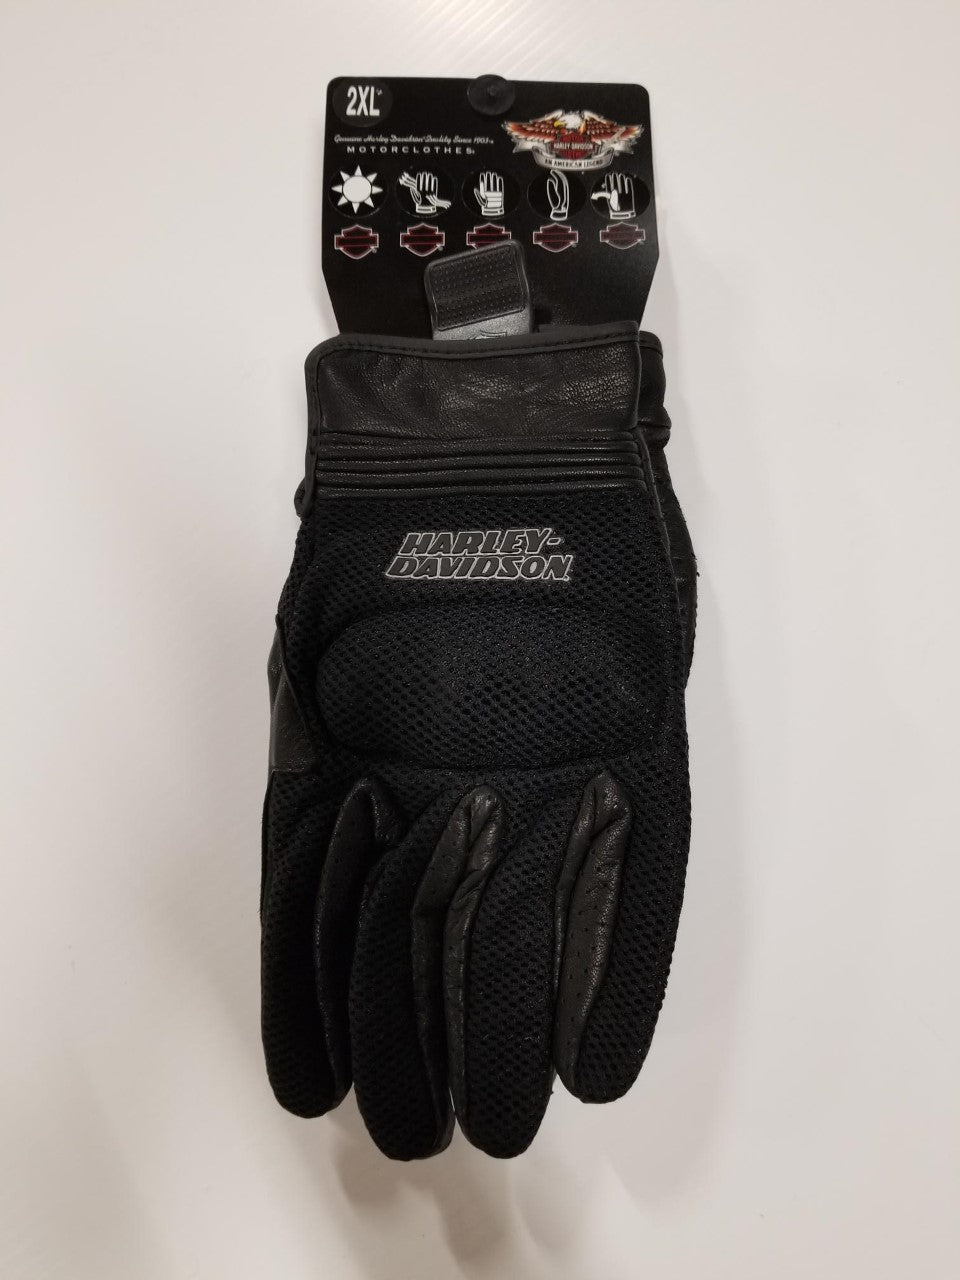 Harley-Davidson backstretch F/finger mesh glove men's